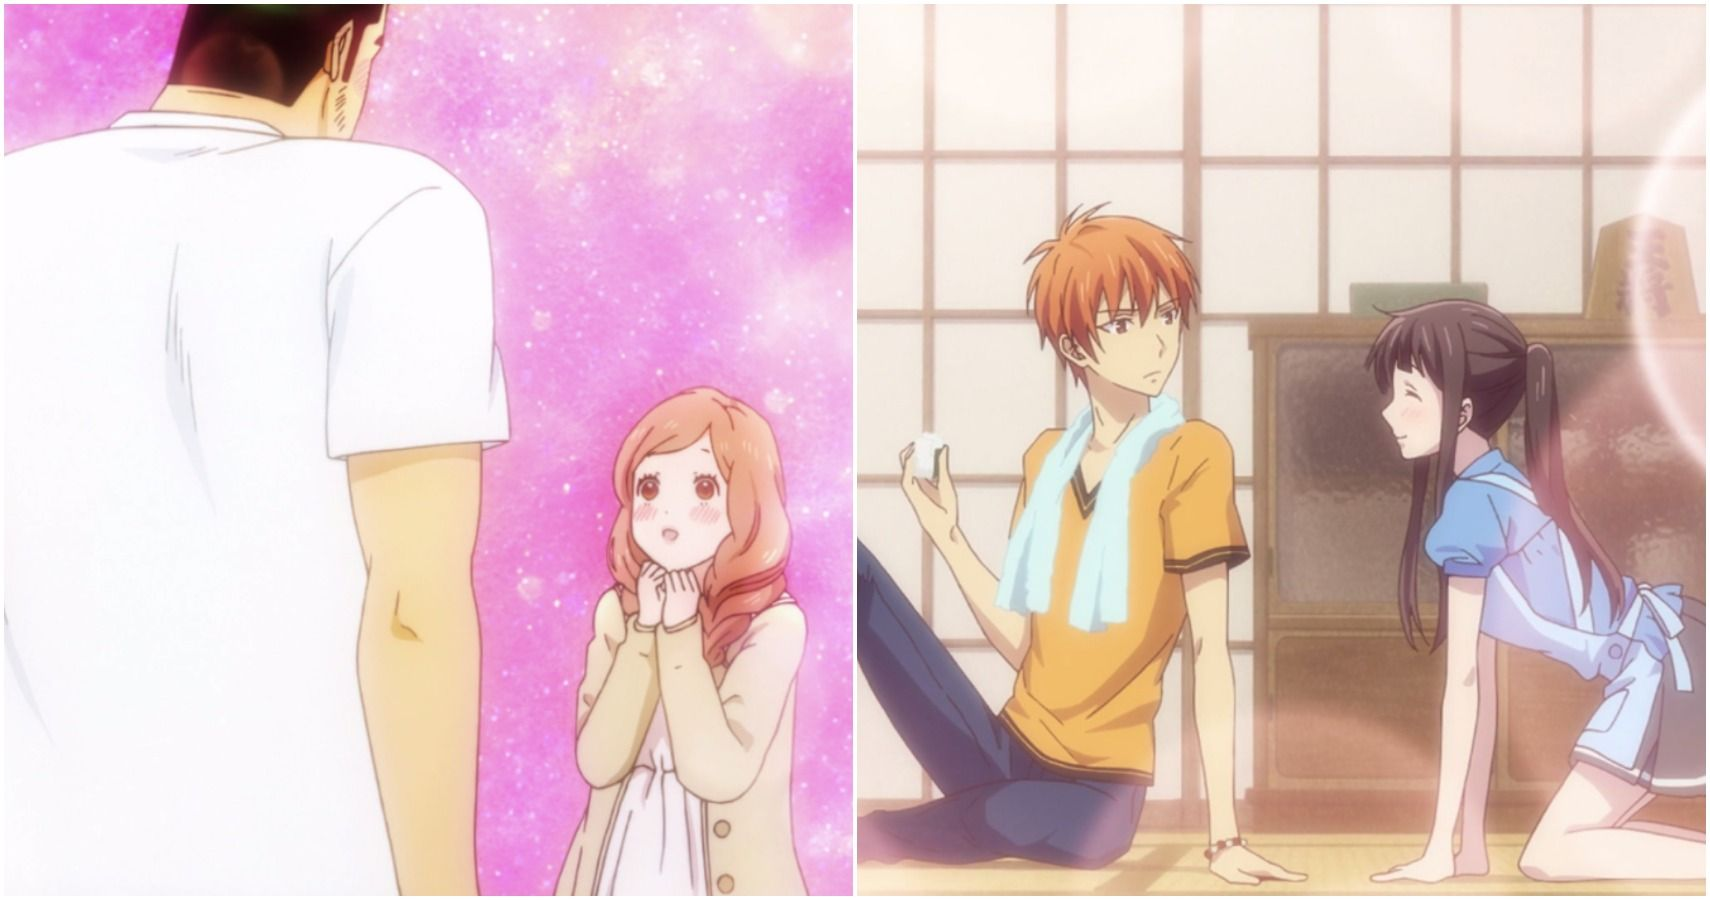 The 10 Best Shojo Anime Couples Of The Decade That Represent True Love